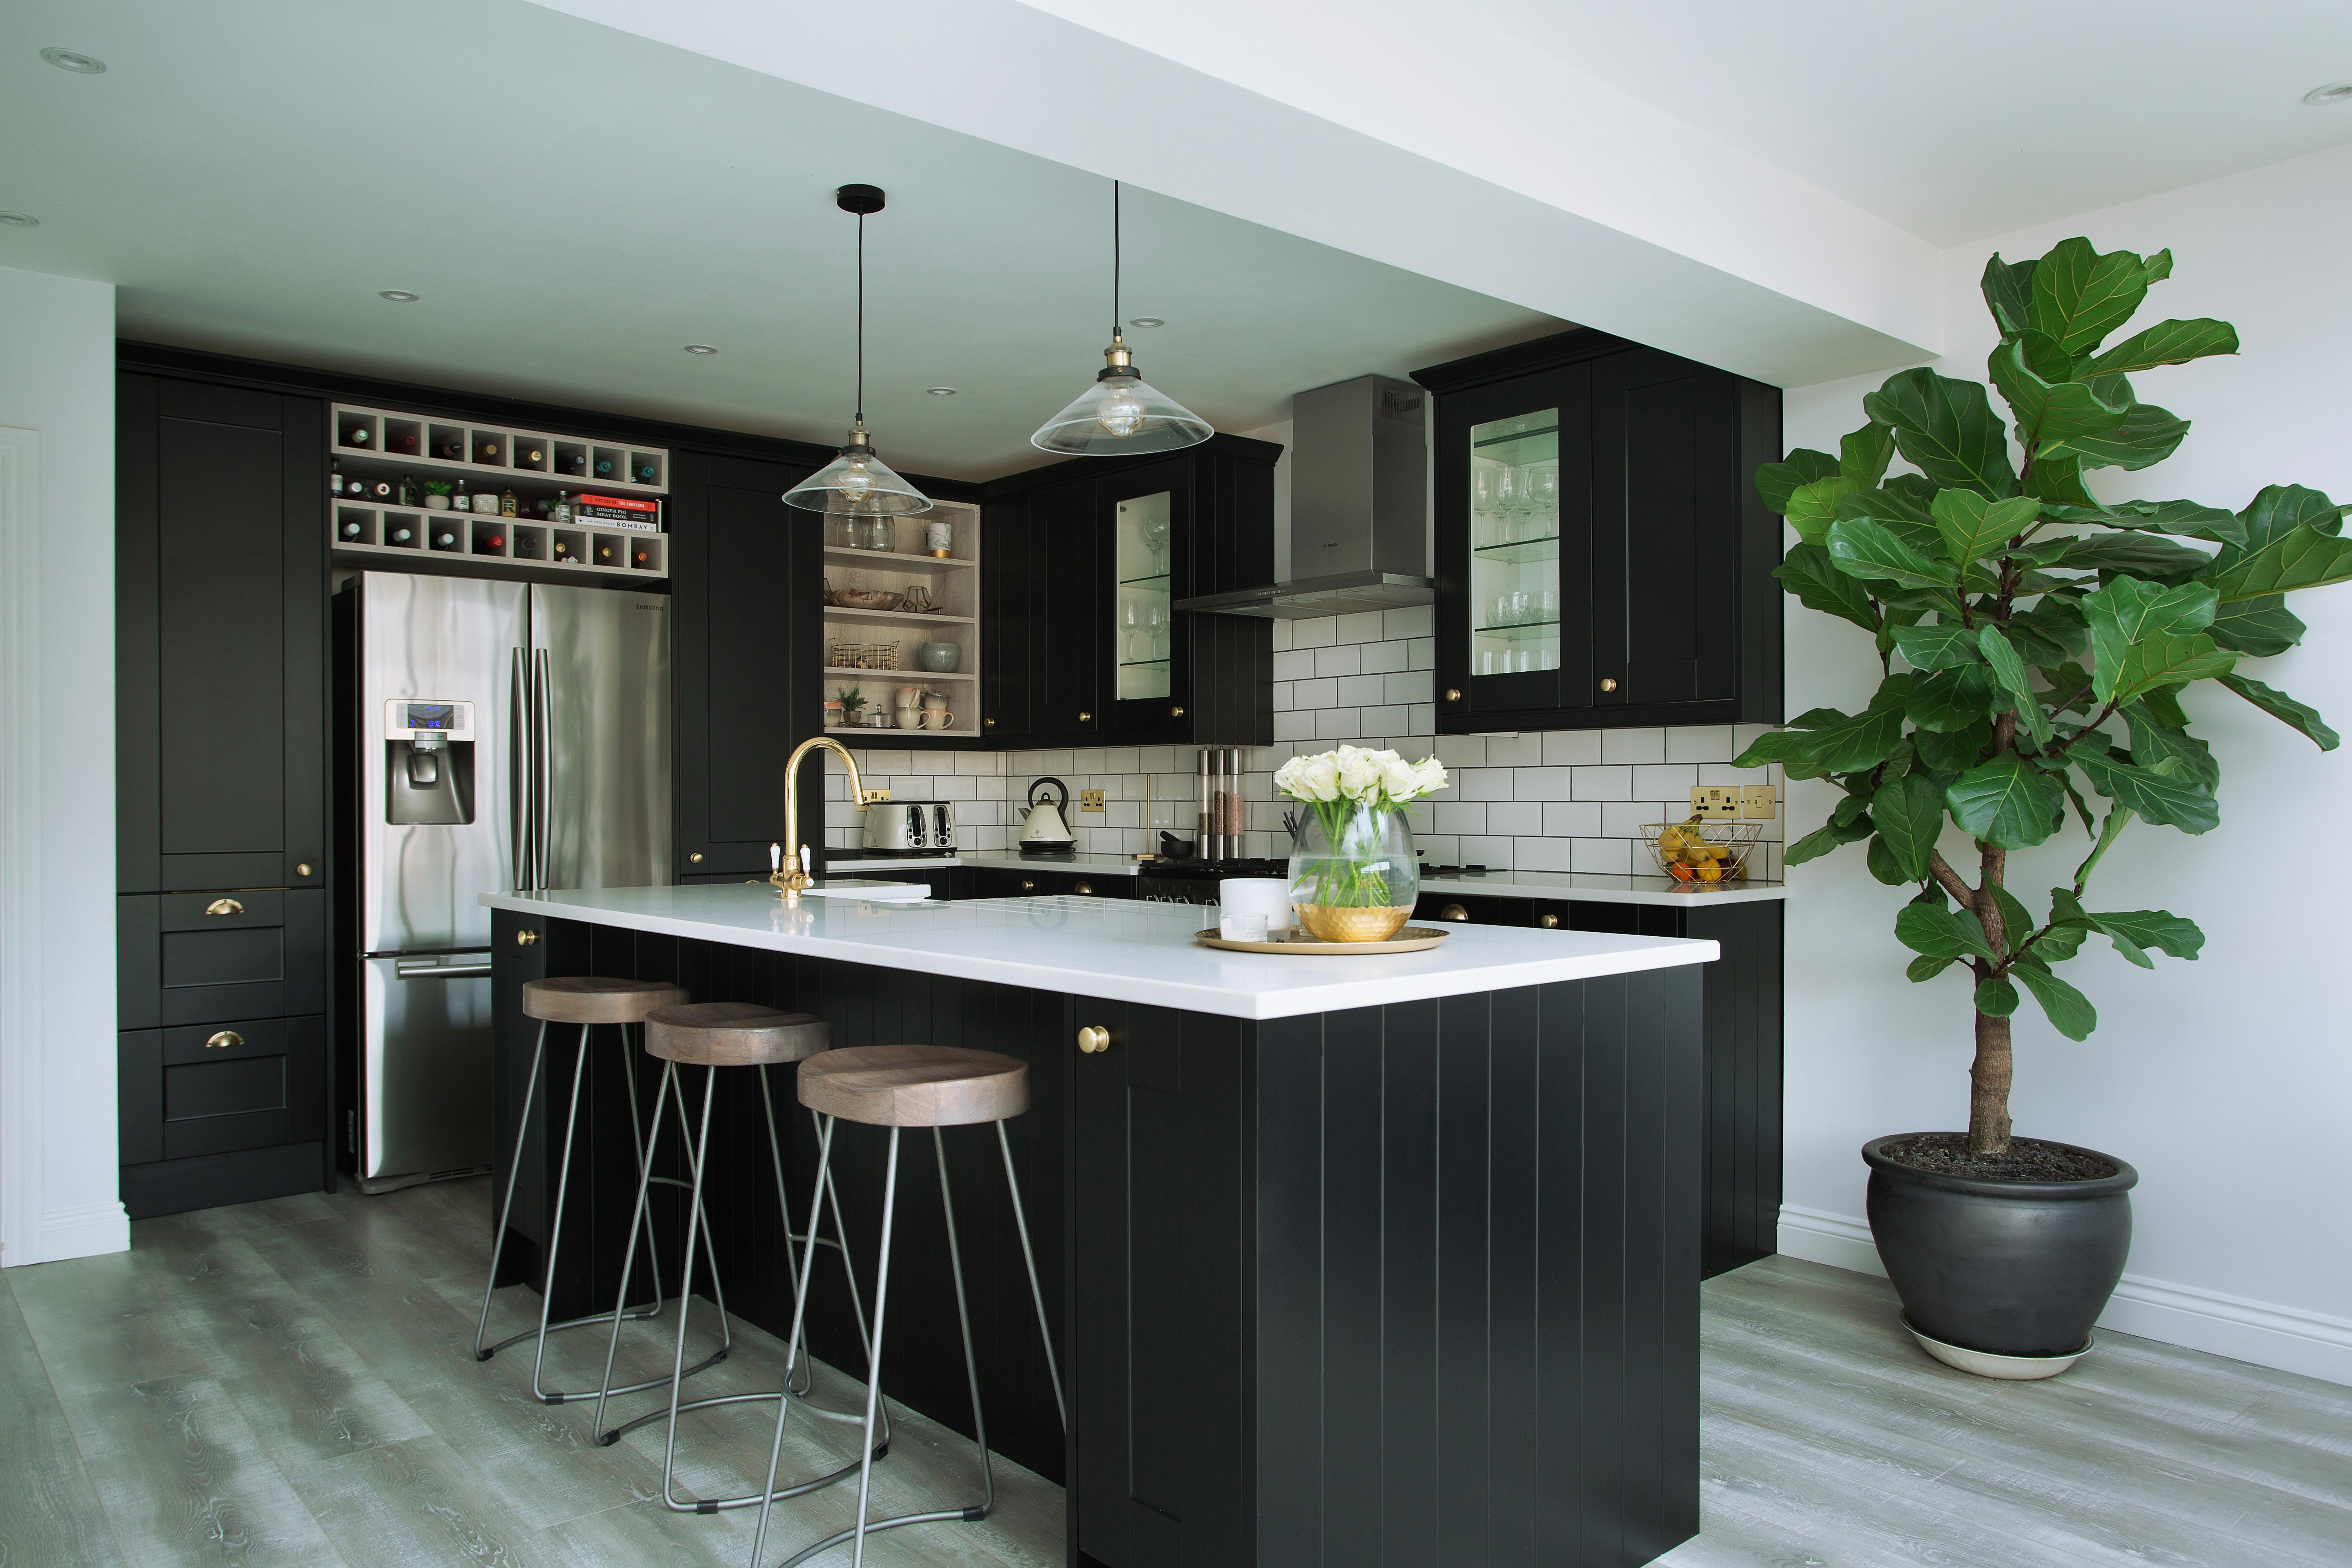 Black Design For Kitchen 10 Home Design Trends To Watch For In 2019 The Spokesman Review